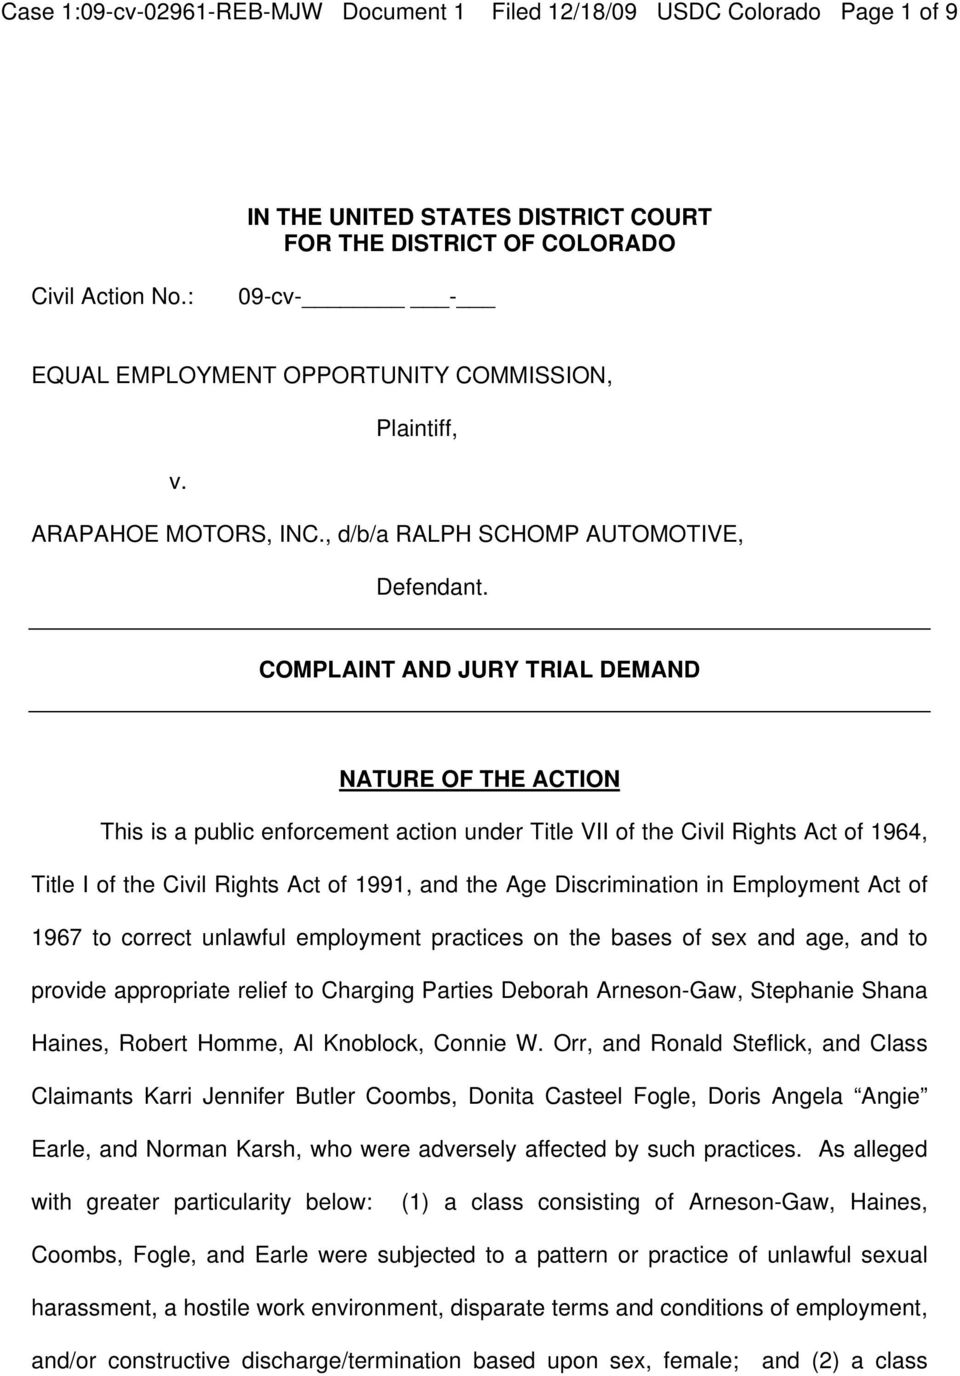 COMPLAINT AND JURY TRIAL DEMAND NATURE OF THE ACTION This is a public enforcement action under Title VII of the Civil Rights Act of 1964, Title I of the Civil Rights Act of 1991, and the Age